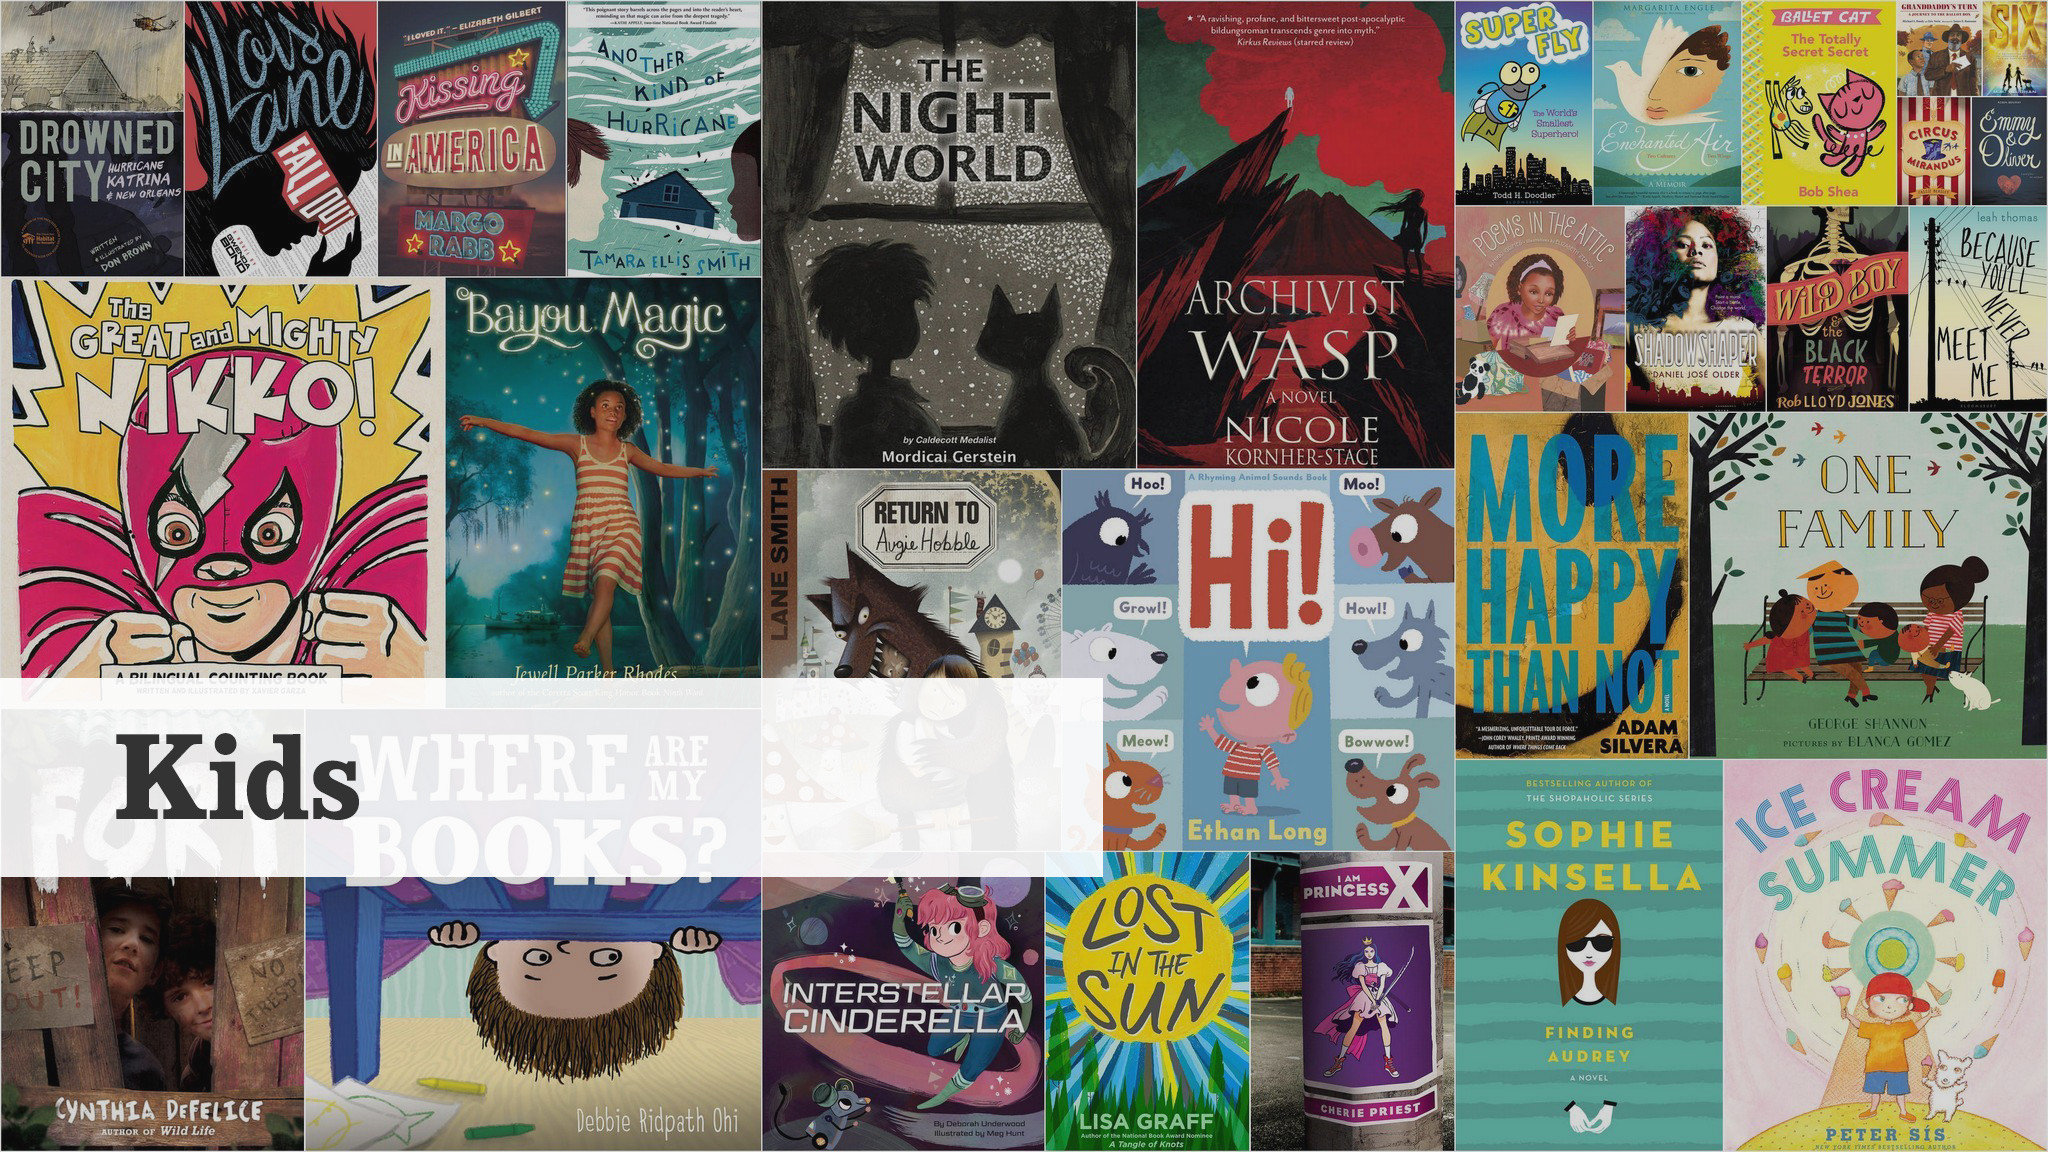 Summer reading guide: The 136 books you'll want to read